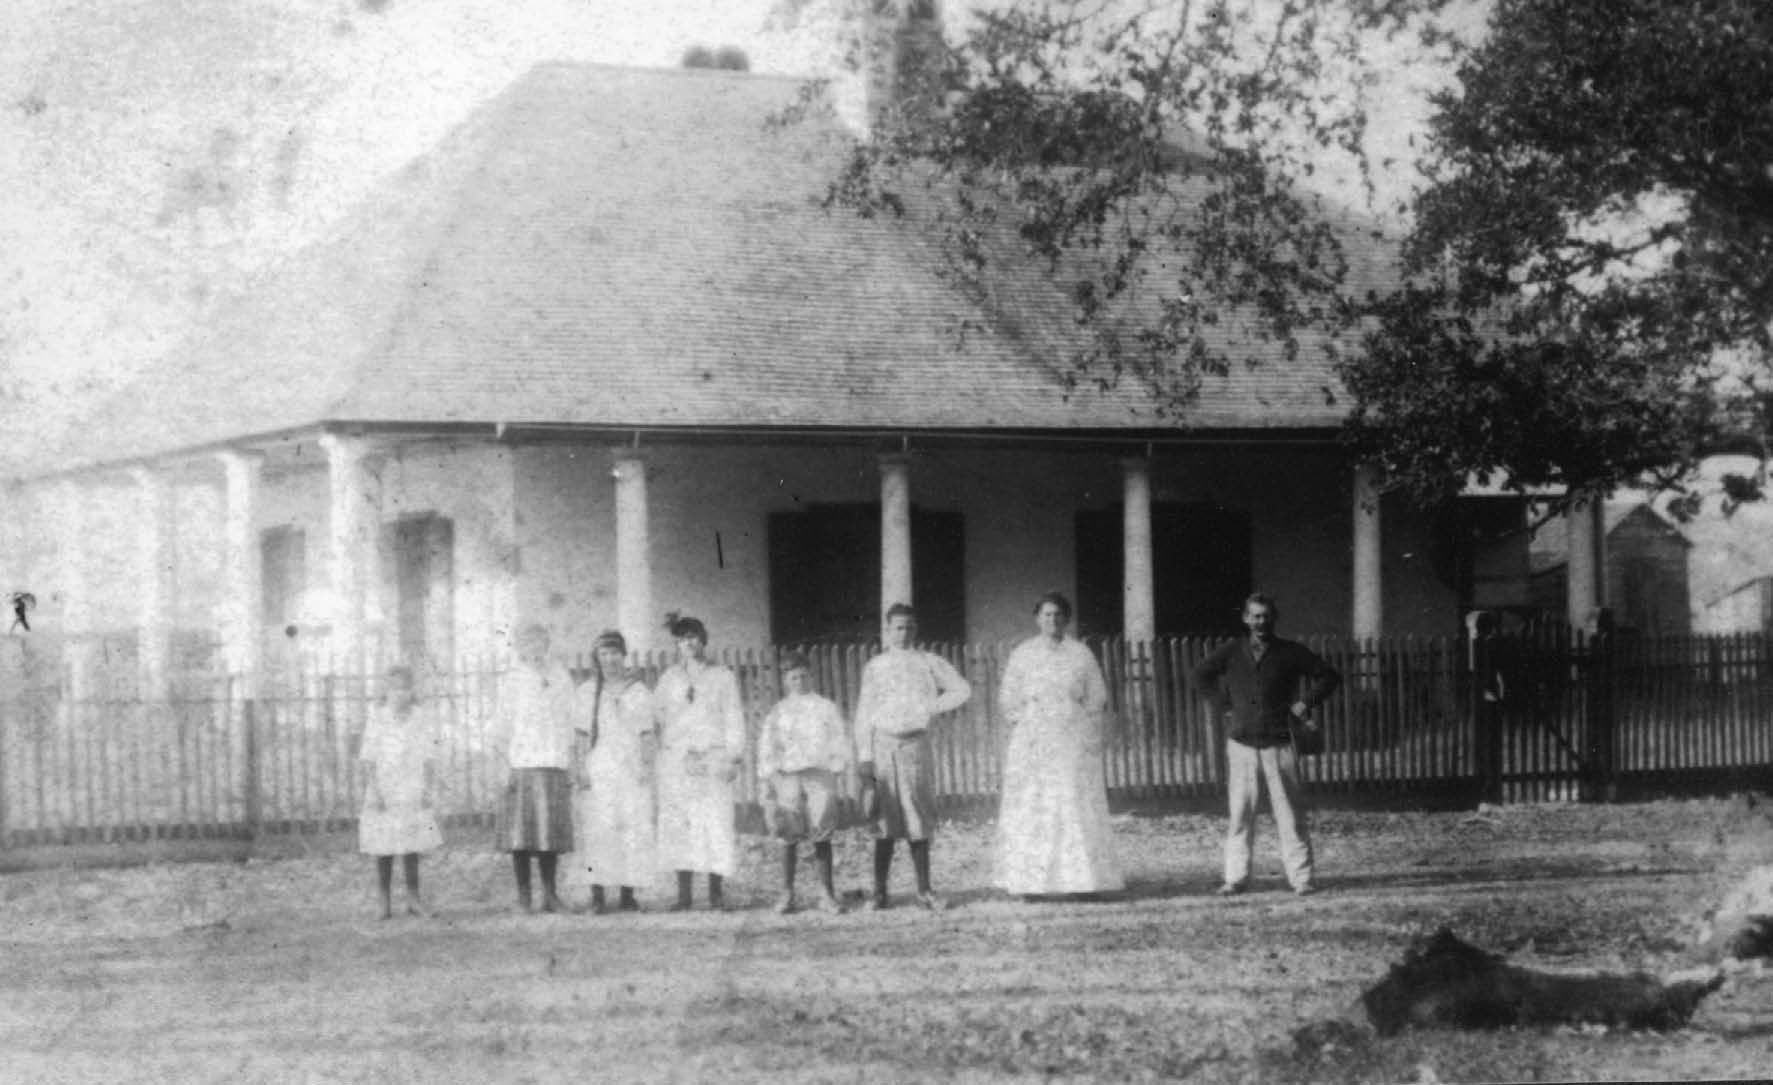 LaBranche Dependency House